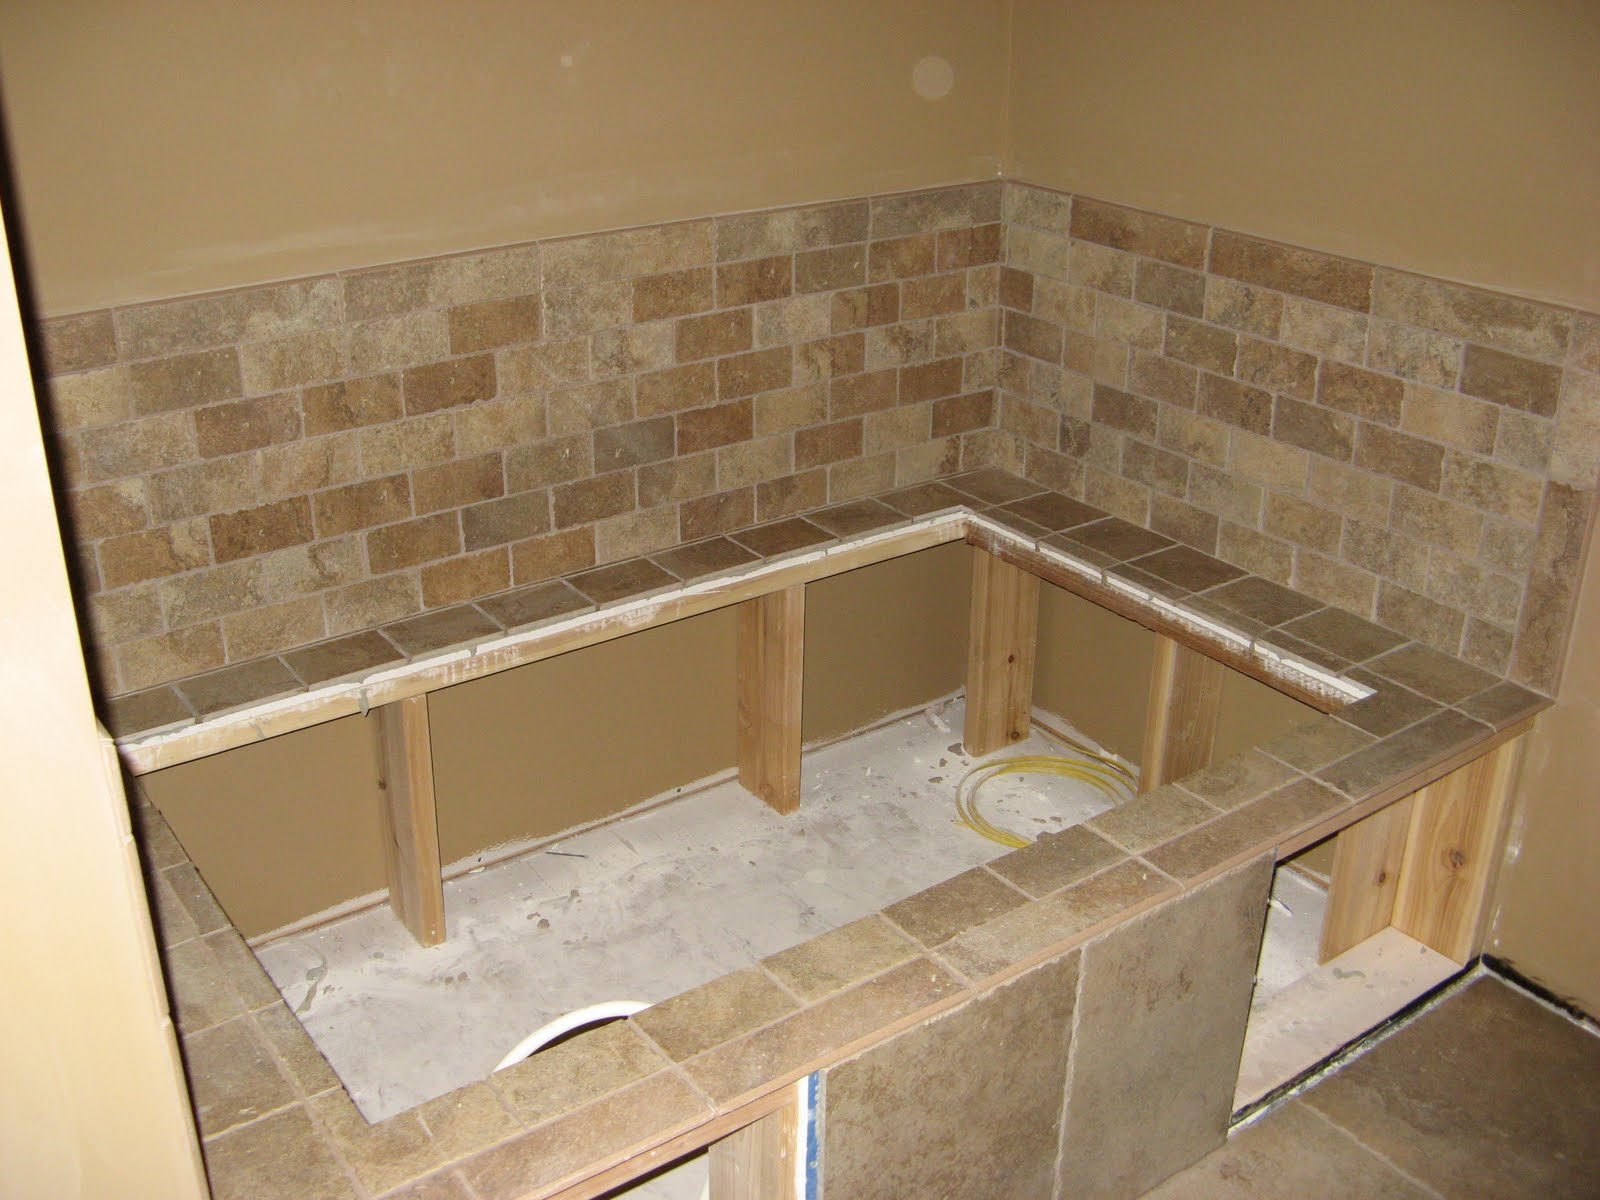 Bathtub Bullnose Tile